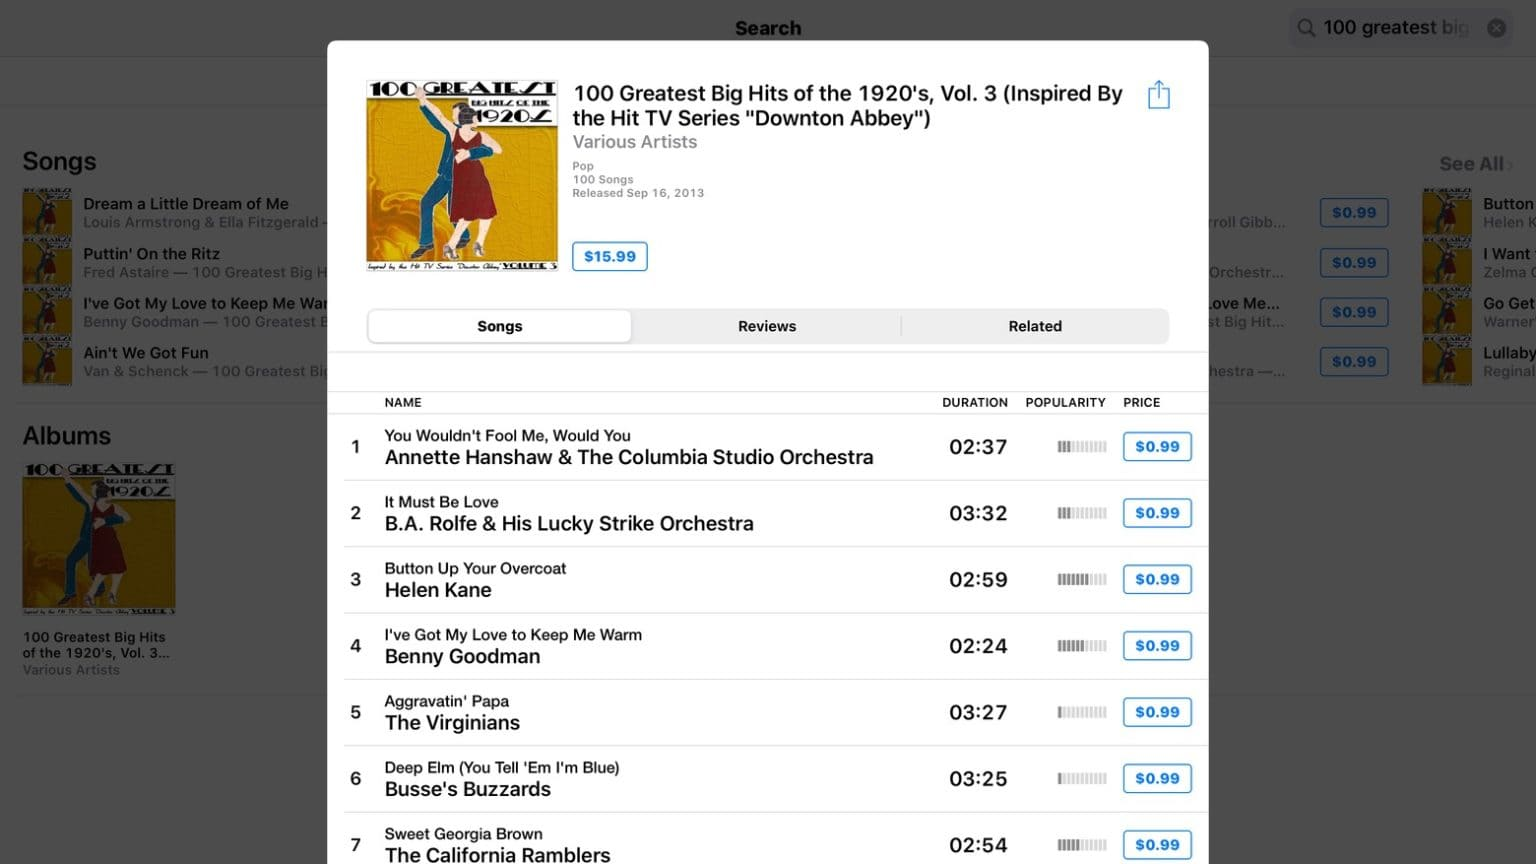 100 Greatest Big Hits of the 1920's, Vol. 3 continues multipolar examples of music piracy on Apple iTunes.